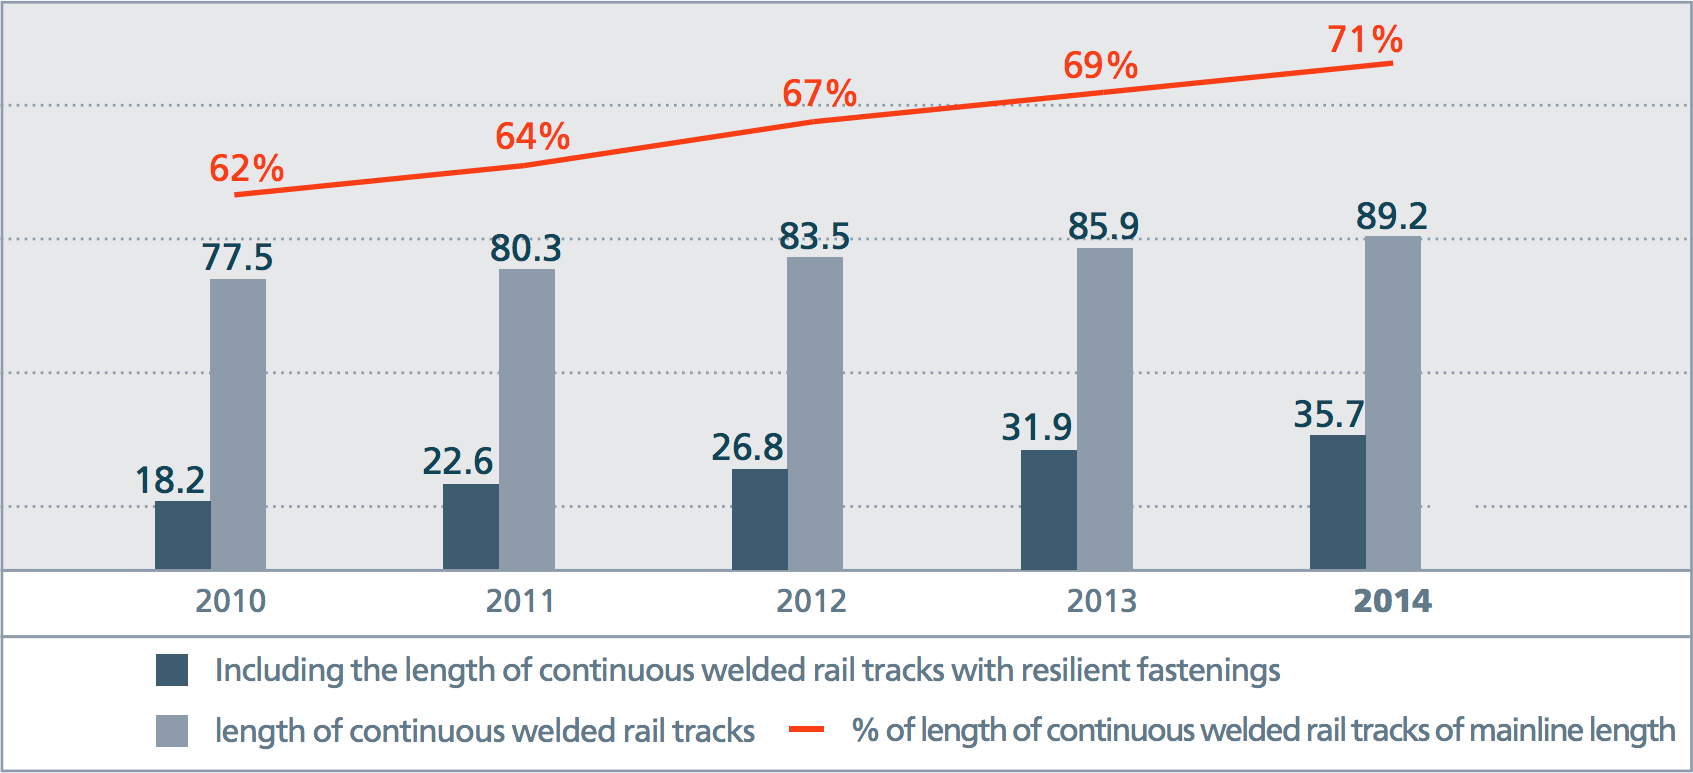 Length of continuous welded rail tracks, including with resilient fastenings, '000 km